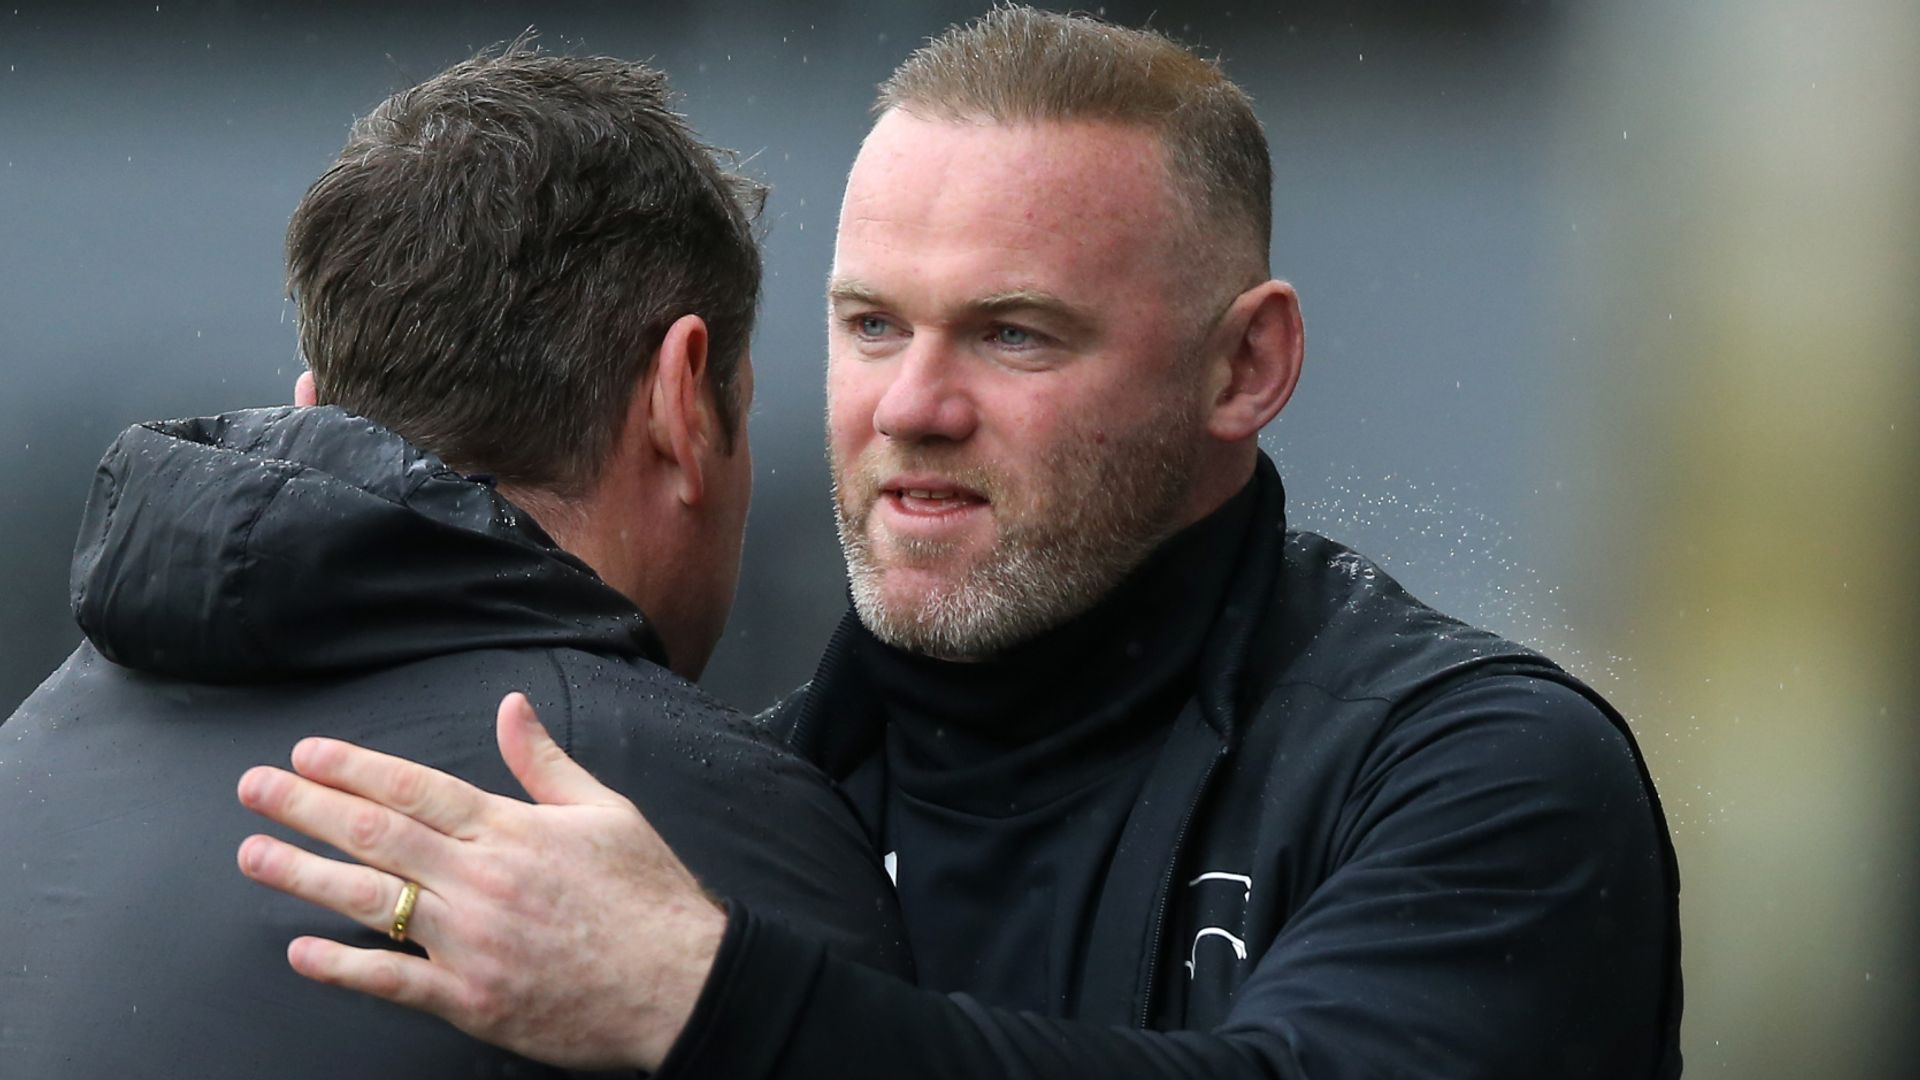 No police action over Rooney blackmail complaint